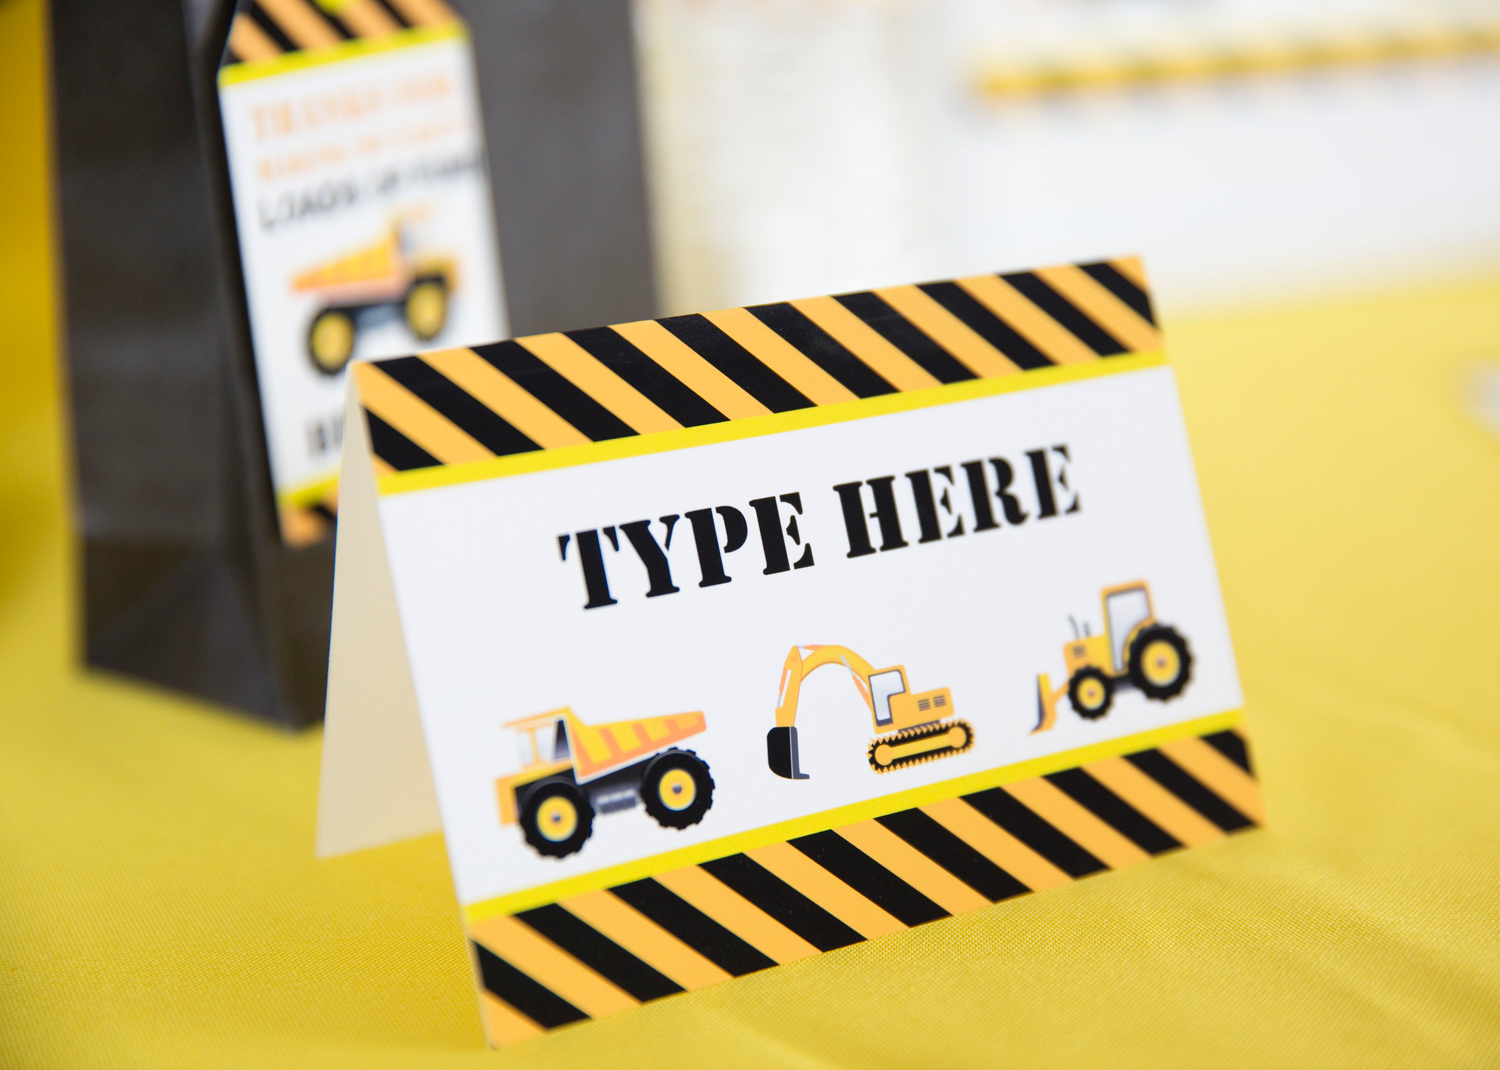 It's just an image of Inventive Construction Party Printables